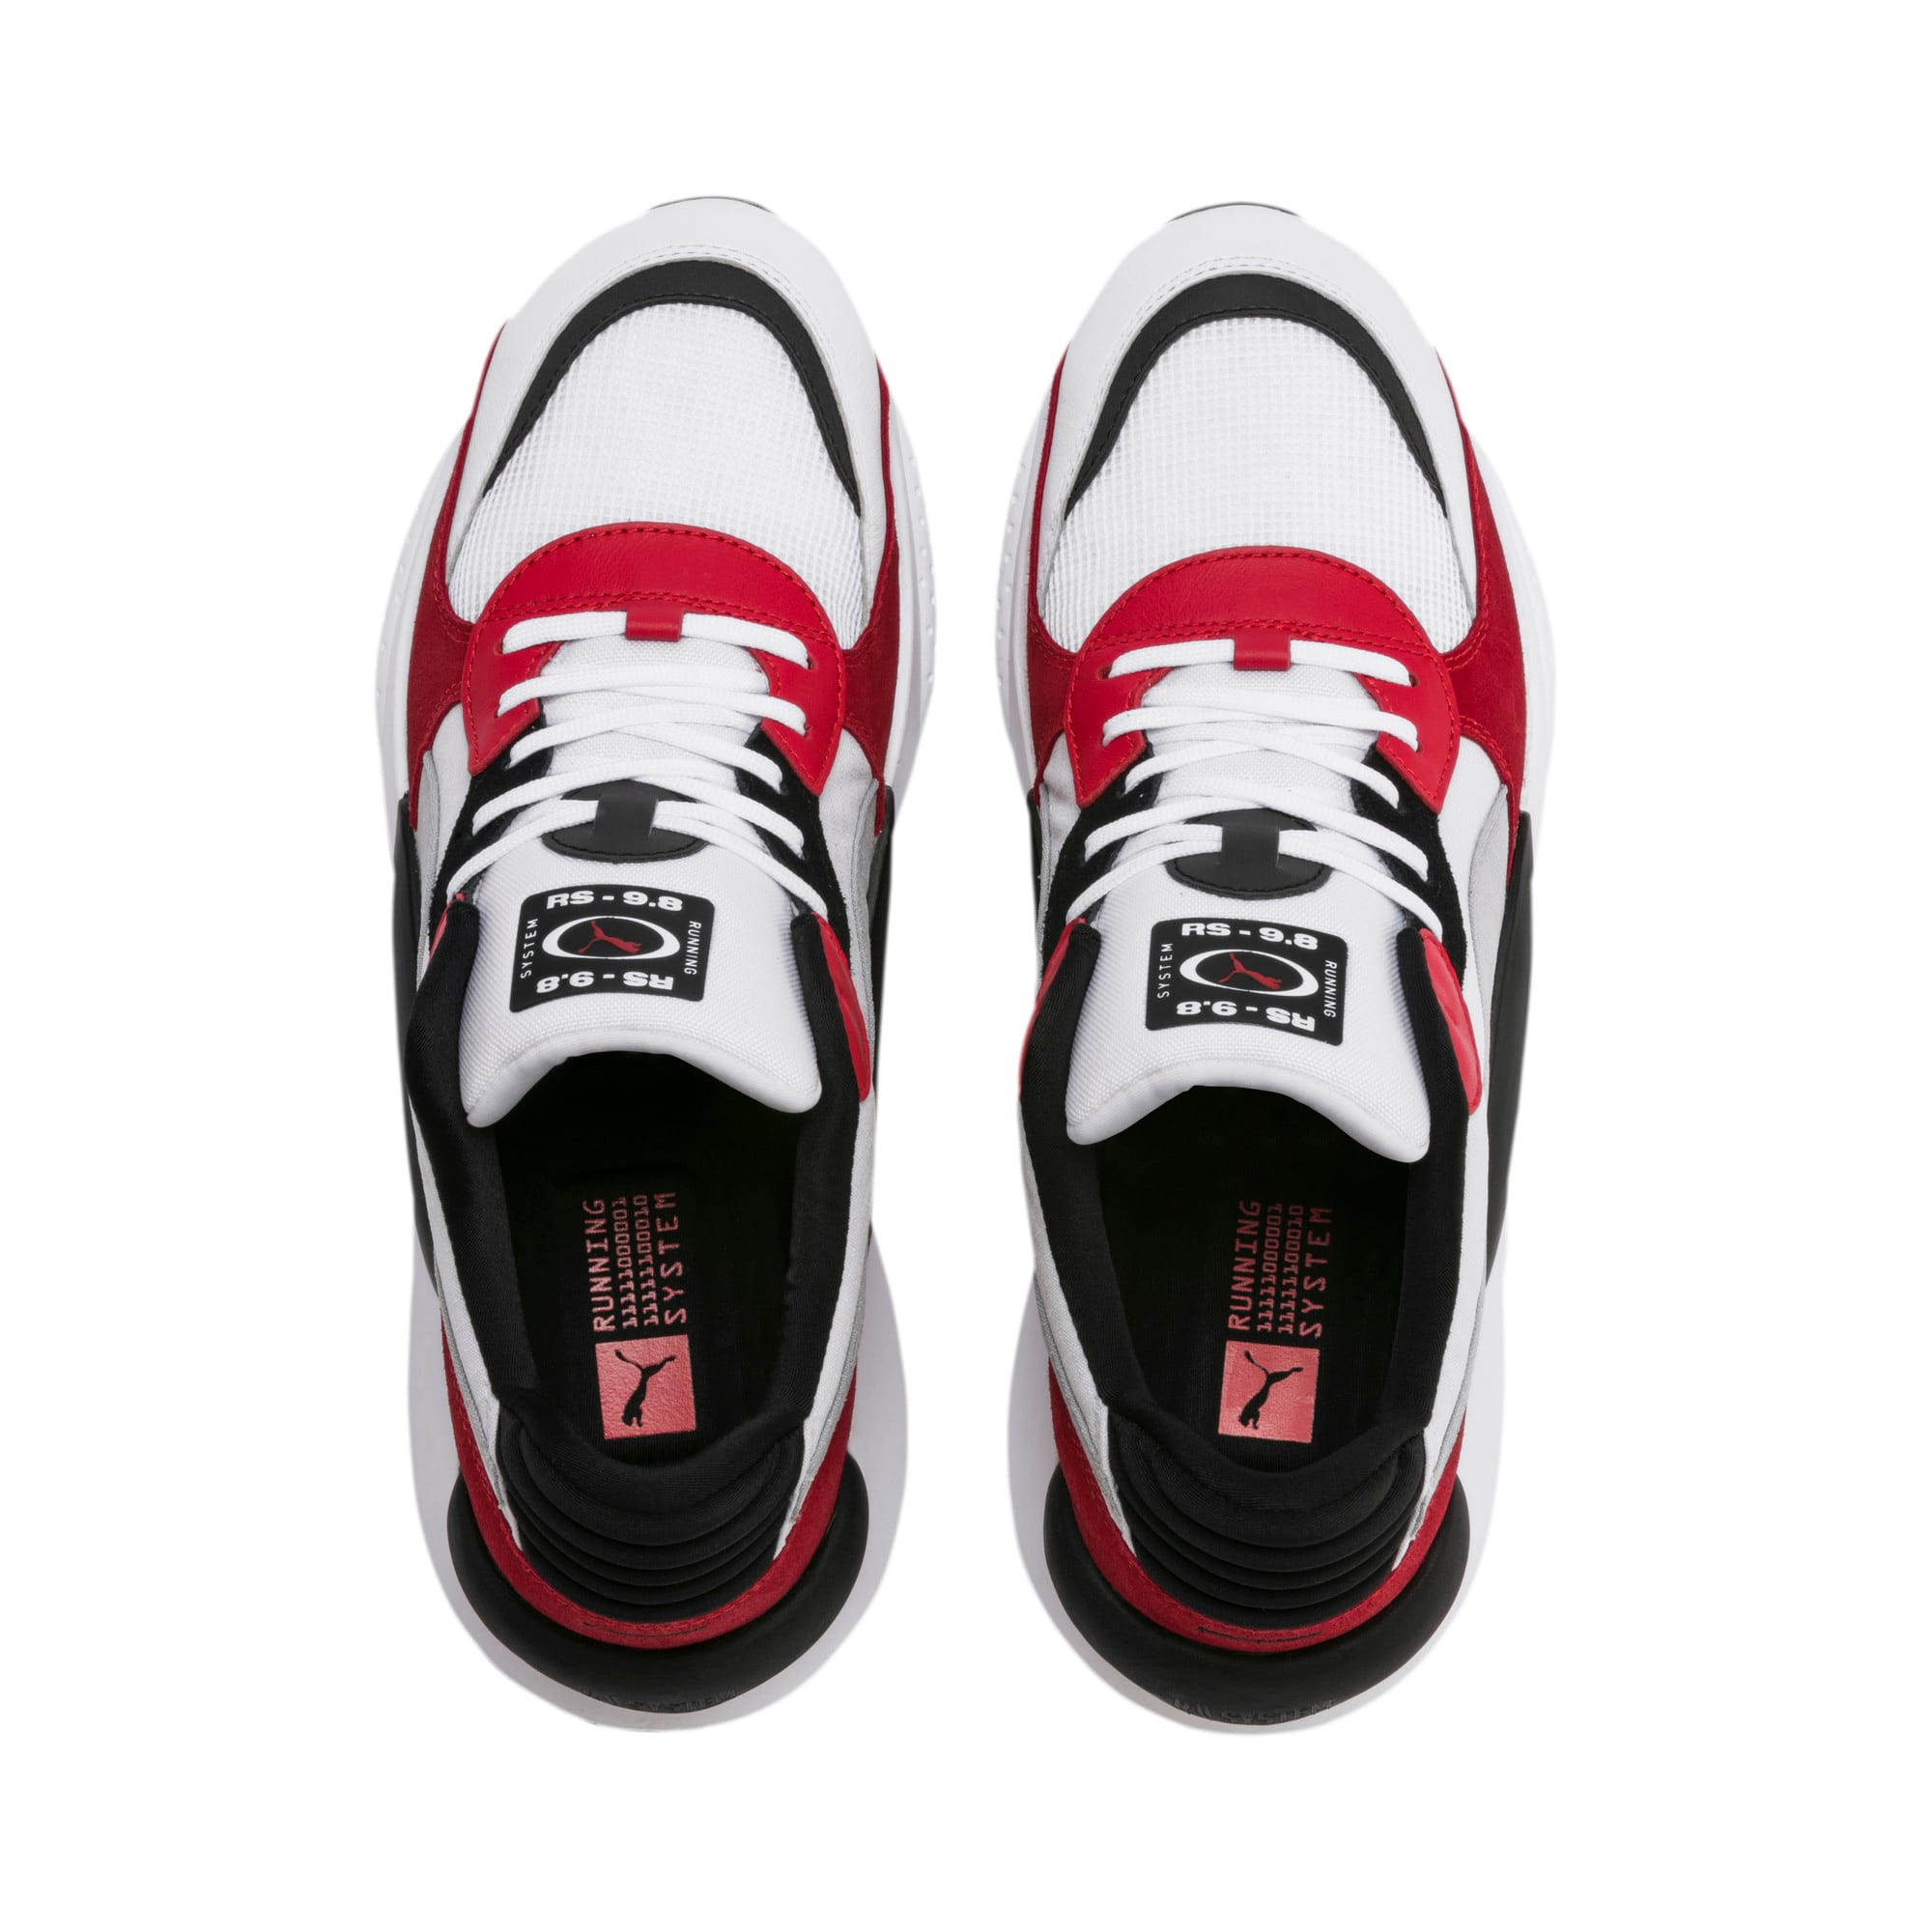 Thumbnail 7 of RS 9.8 Space Sneakers, Puma White-High Risk Red, medium